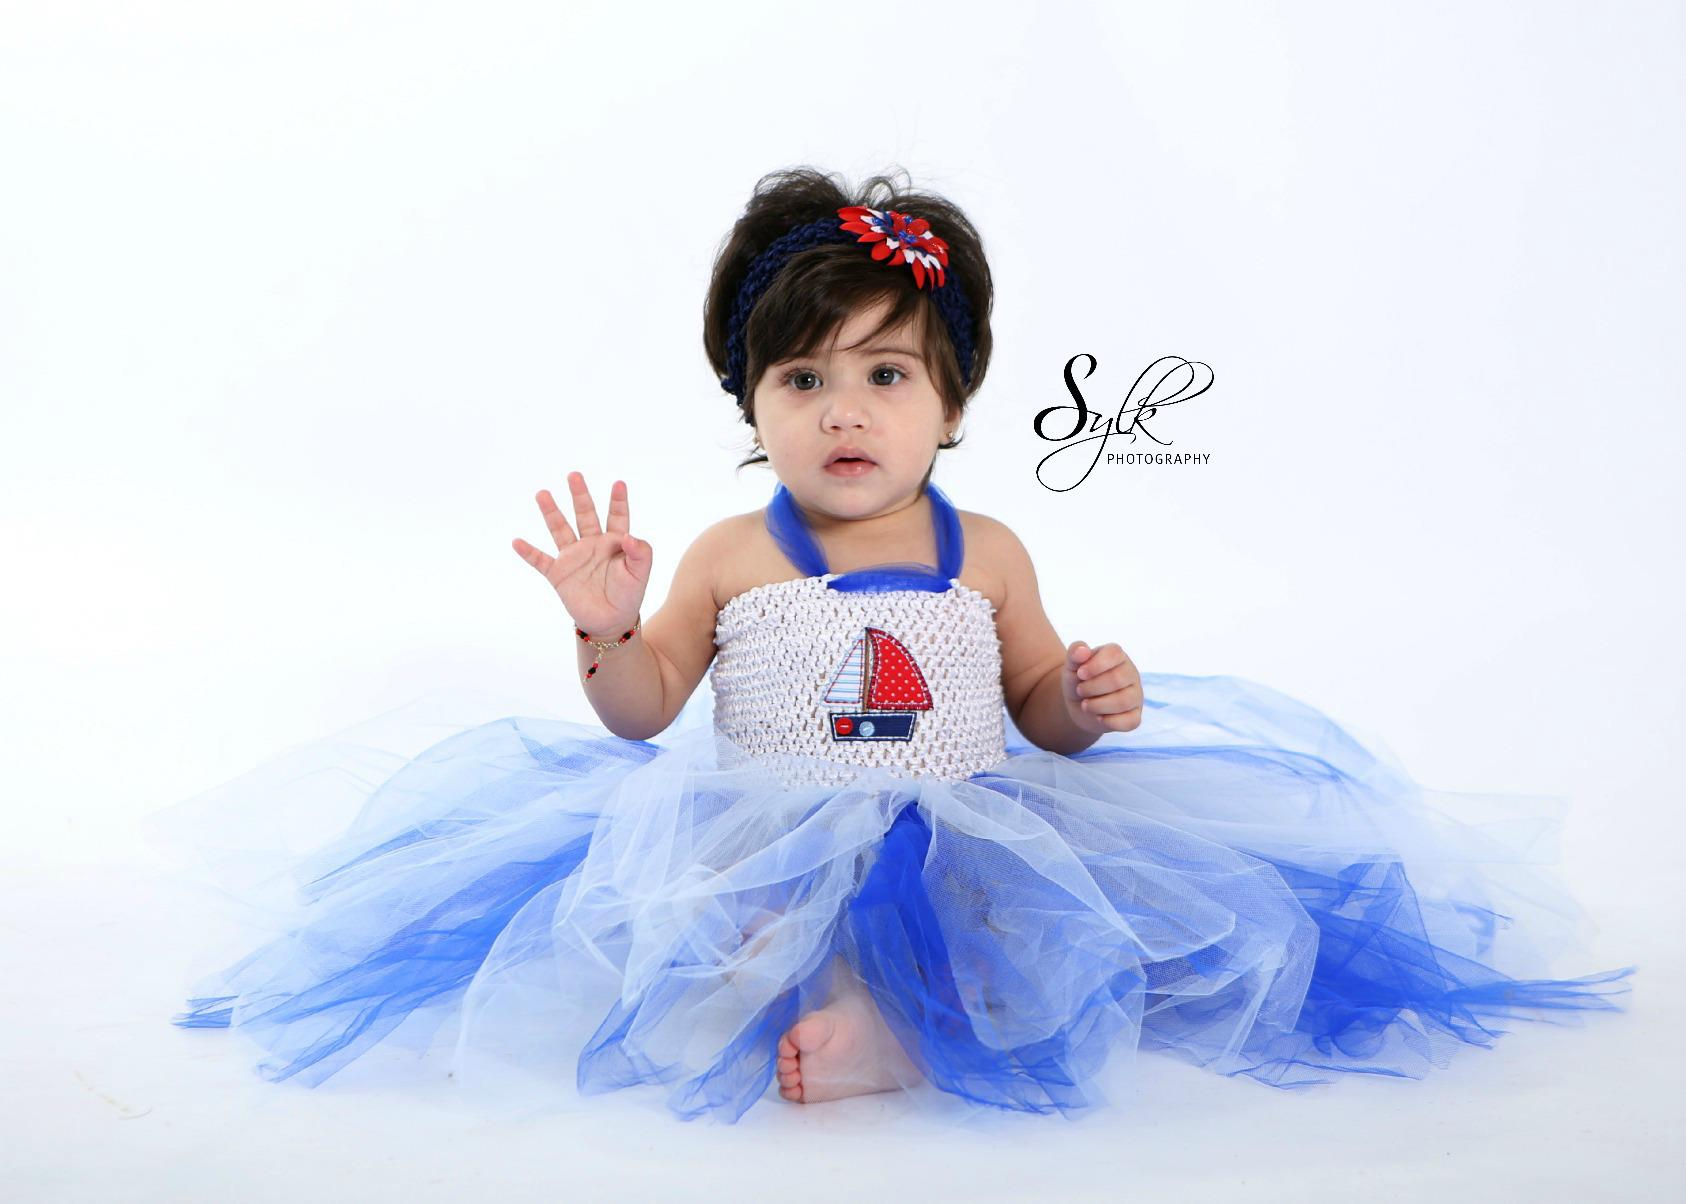 Nautical Tutu dress set $25